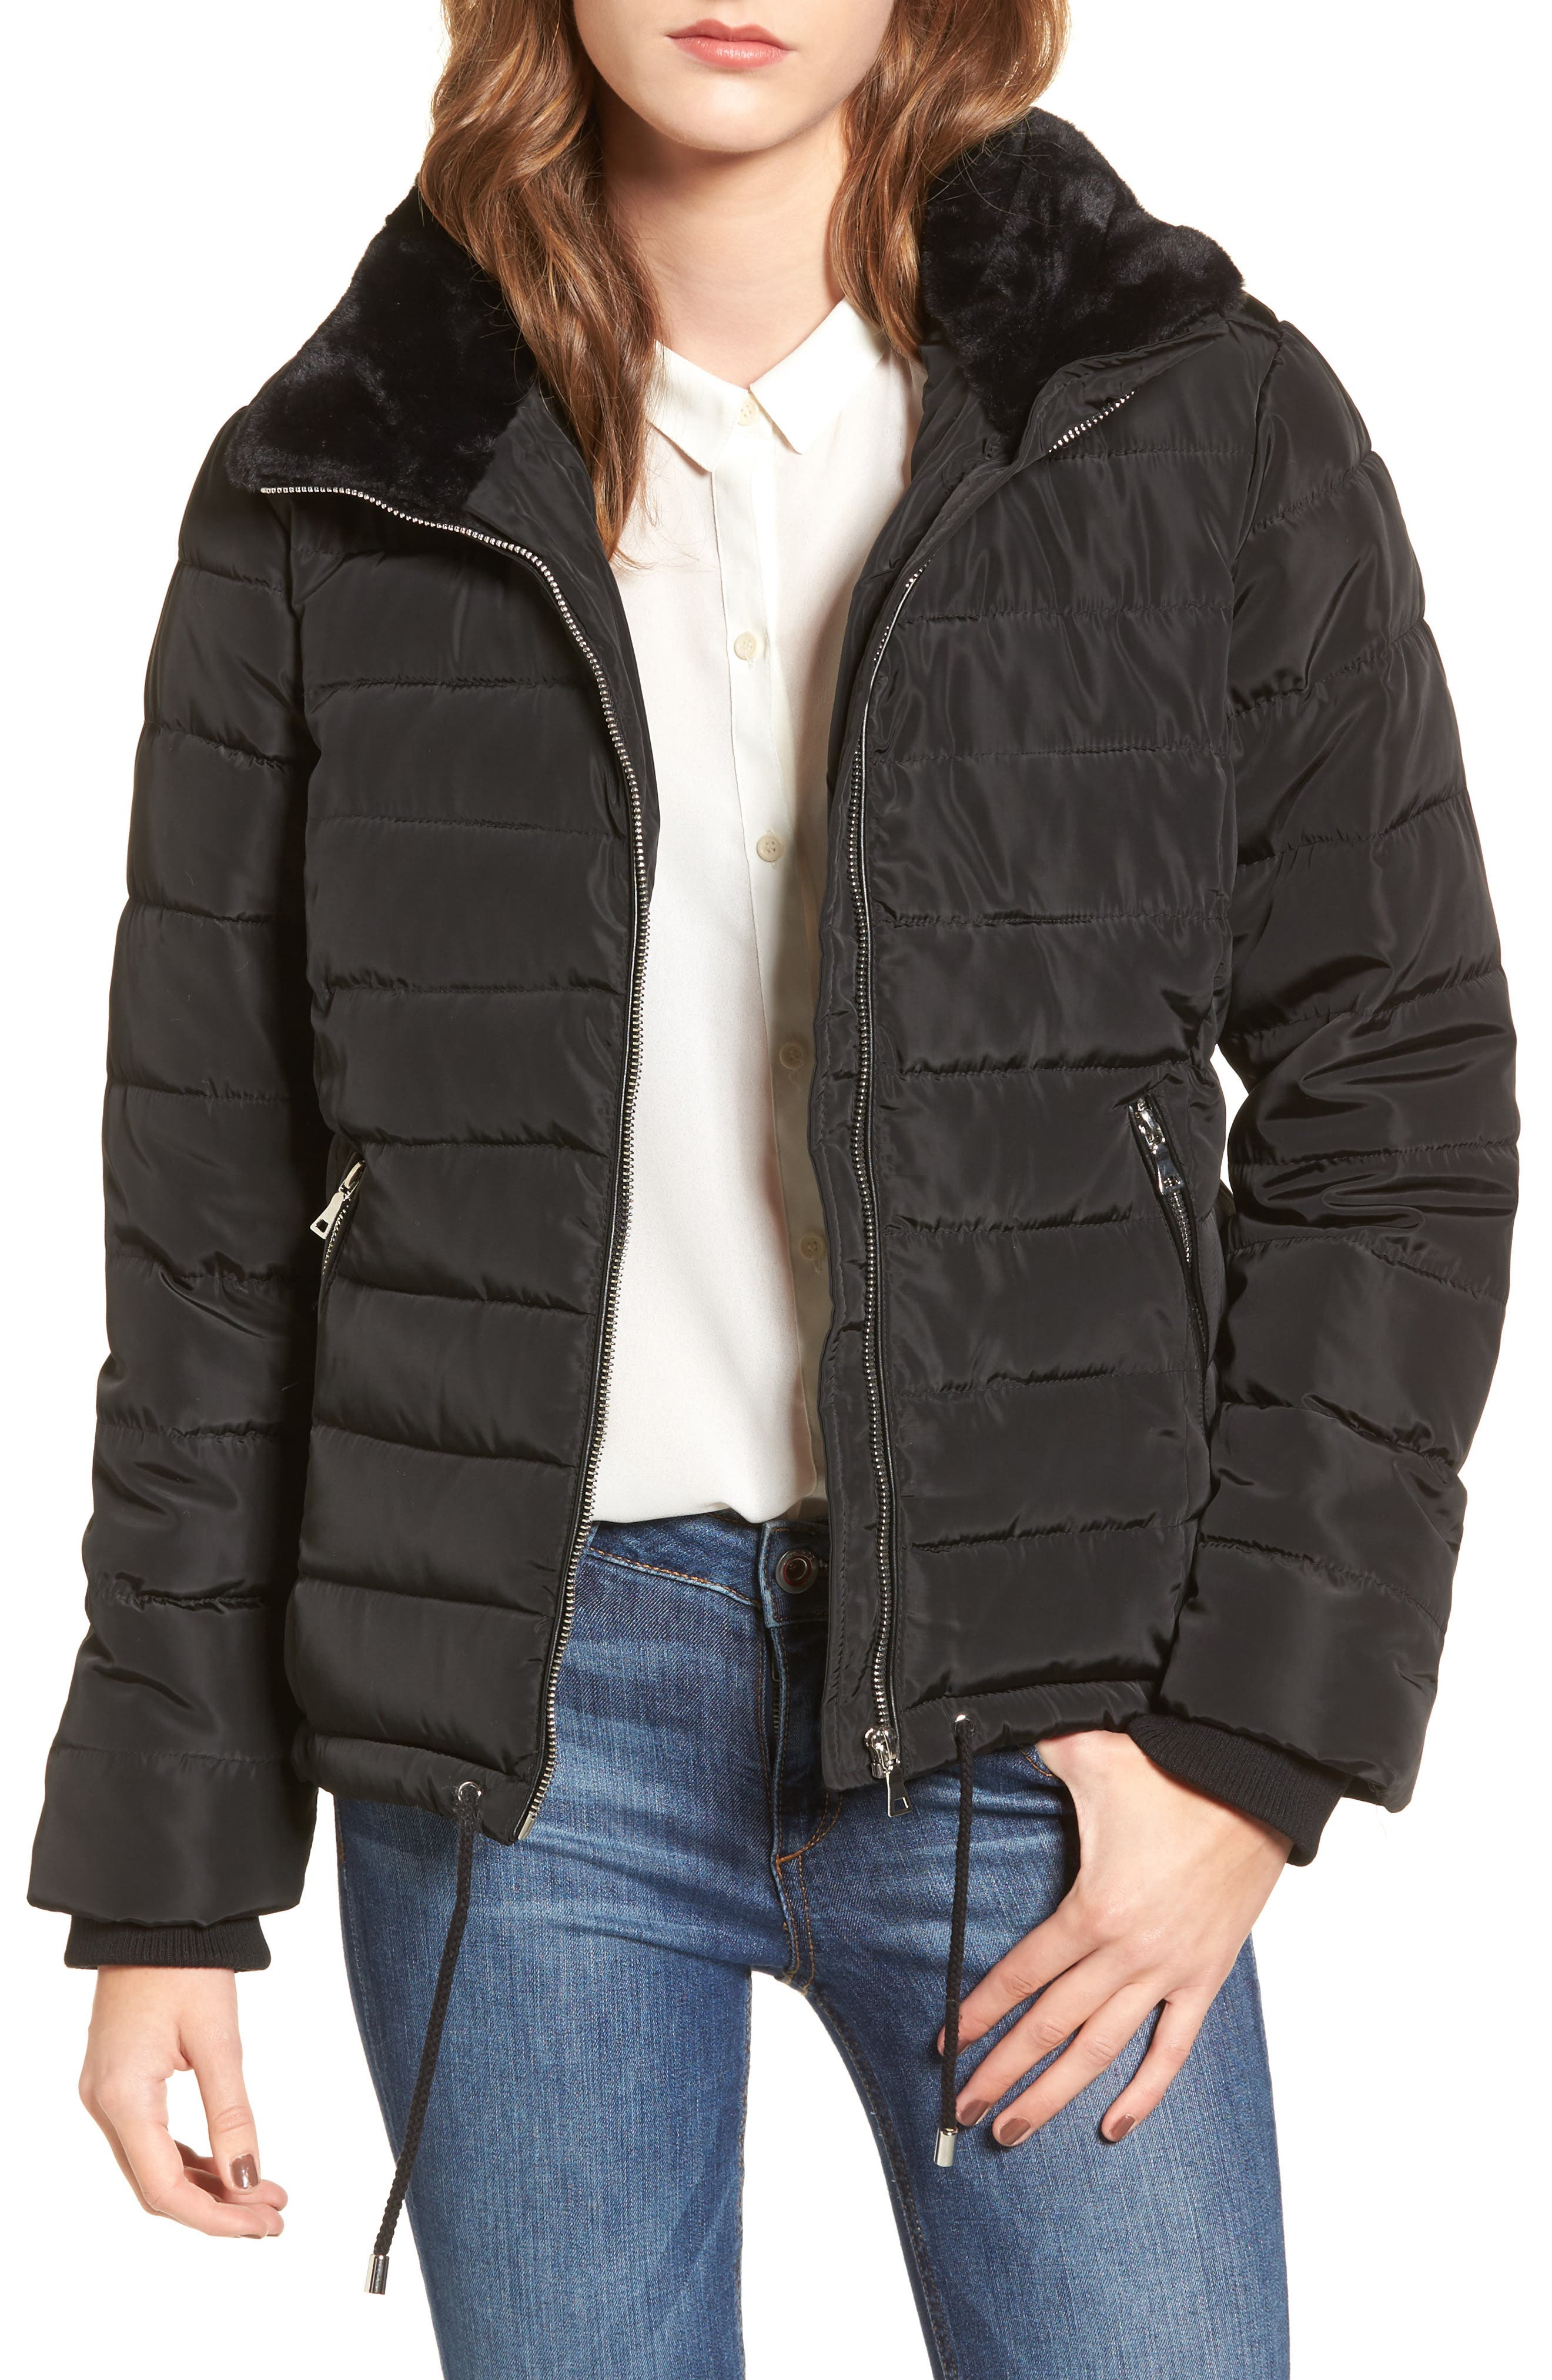 Main Image - Dorothy Perkins Puffer Jacket with Faux Fur